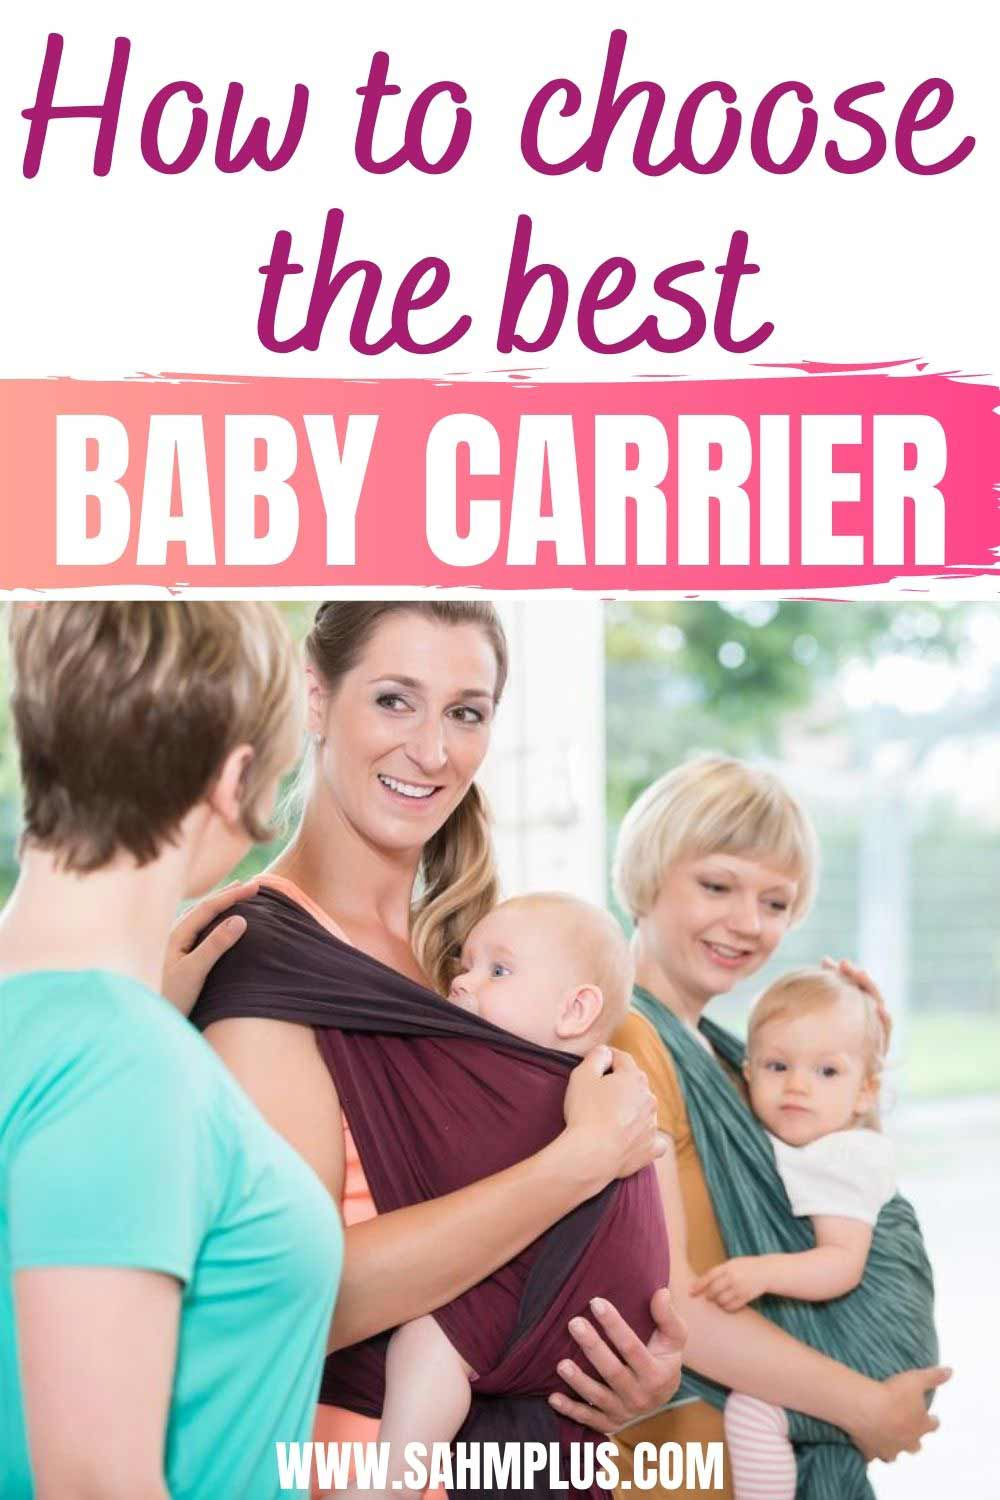 How to choose a baby carrier! Best tips for happy babywearing. Sling, wrap, soft-structured carrier? I'll help